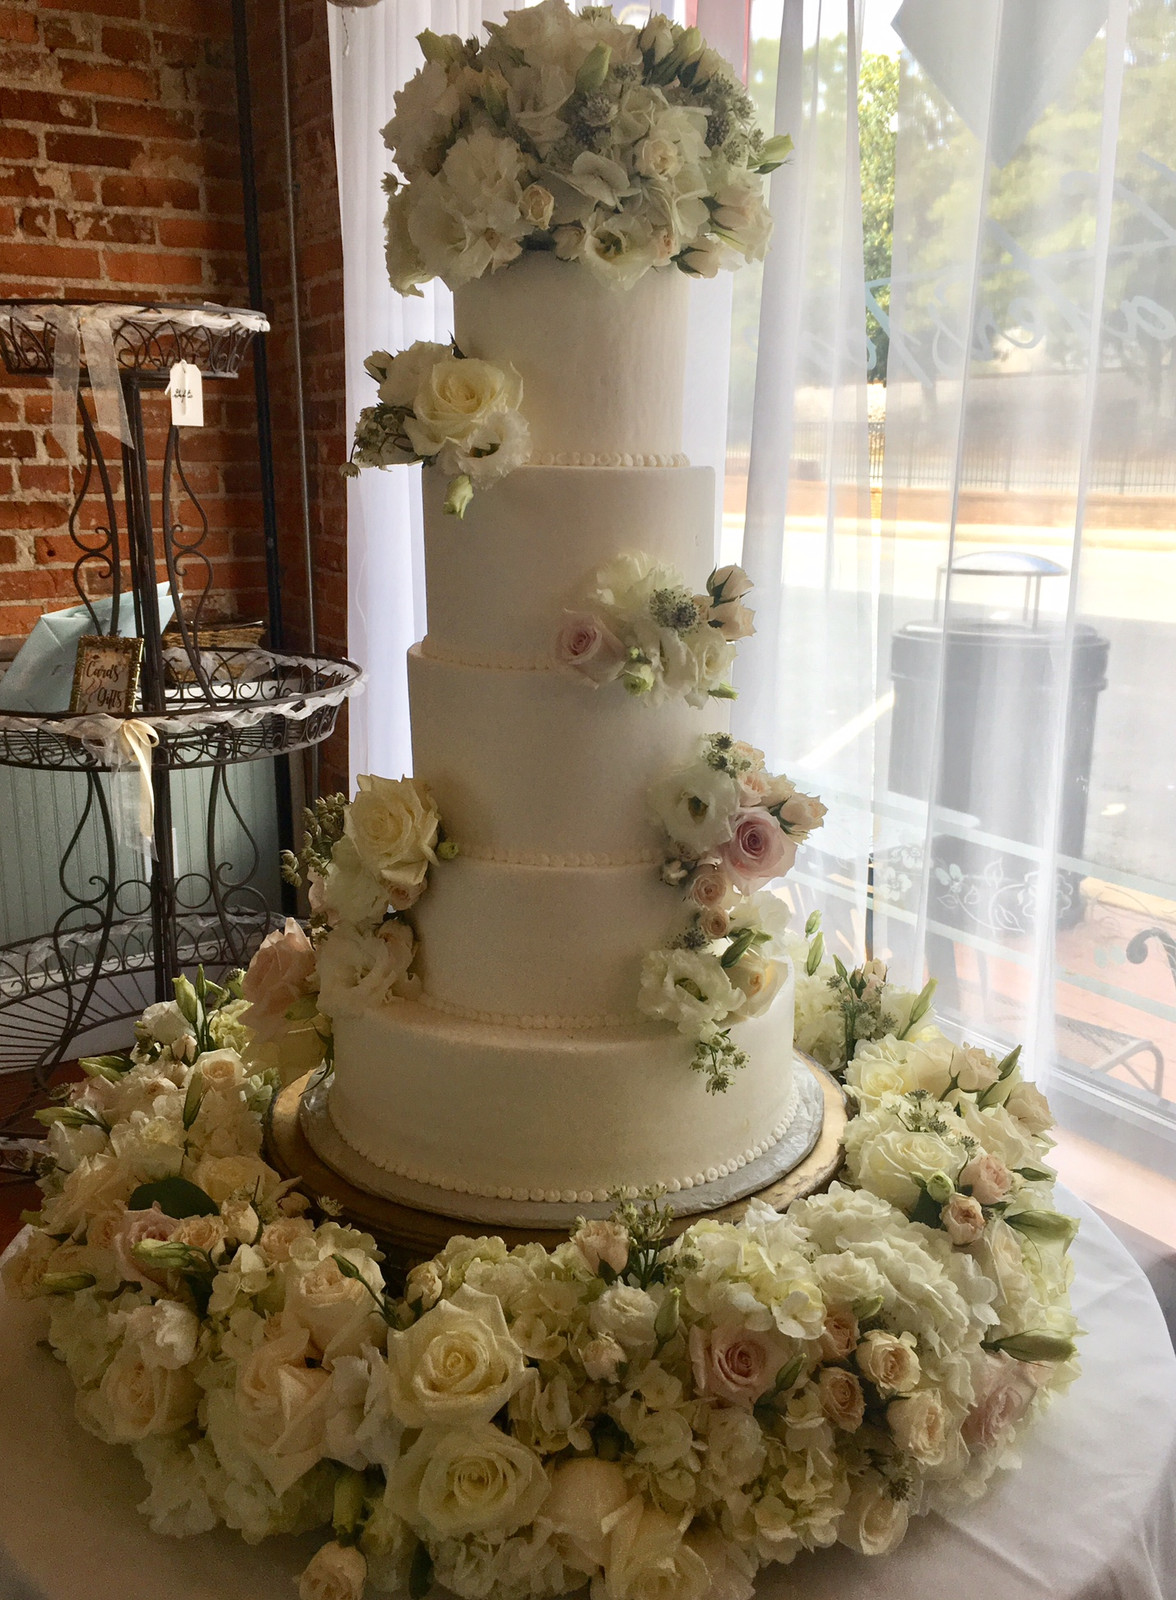 Fresh Flowers In Adundance Complete With Beautiful Wedding Cake Add Any Personal Touch Or Changes To Of Our Award Winning Designs